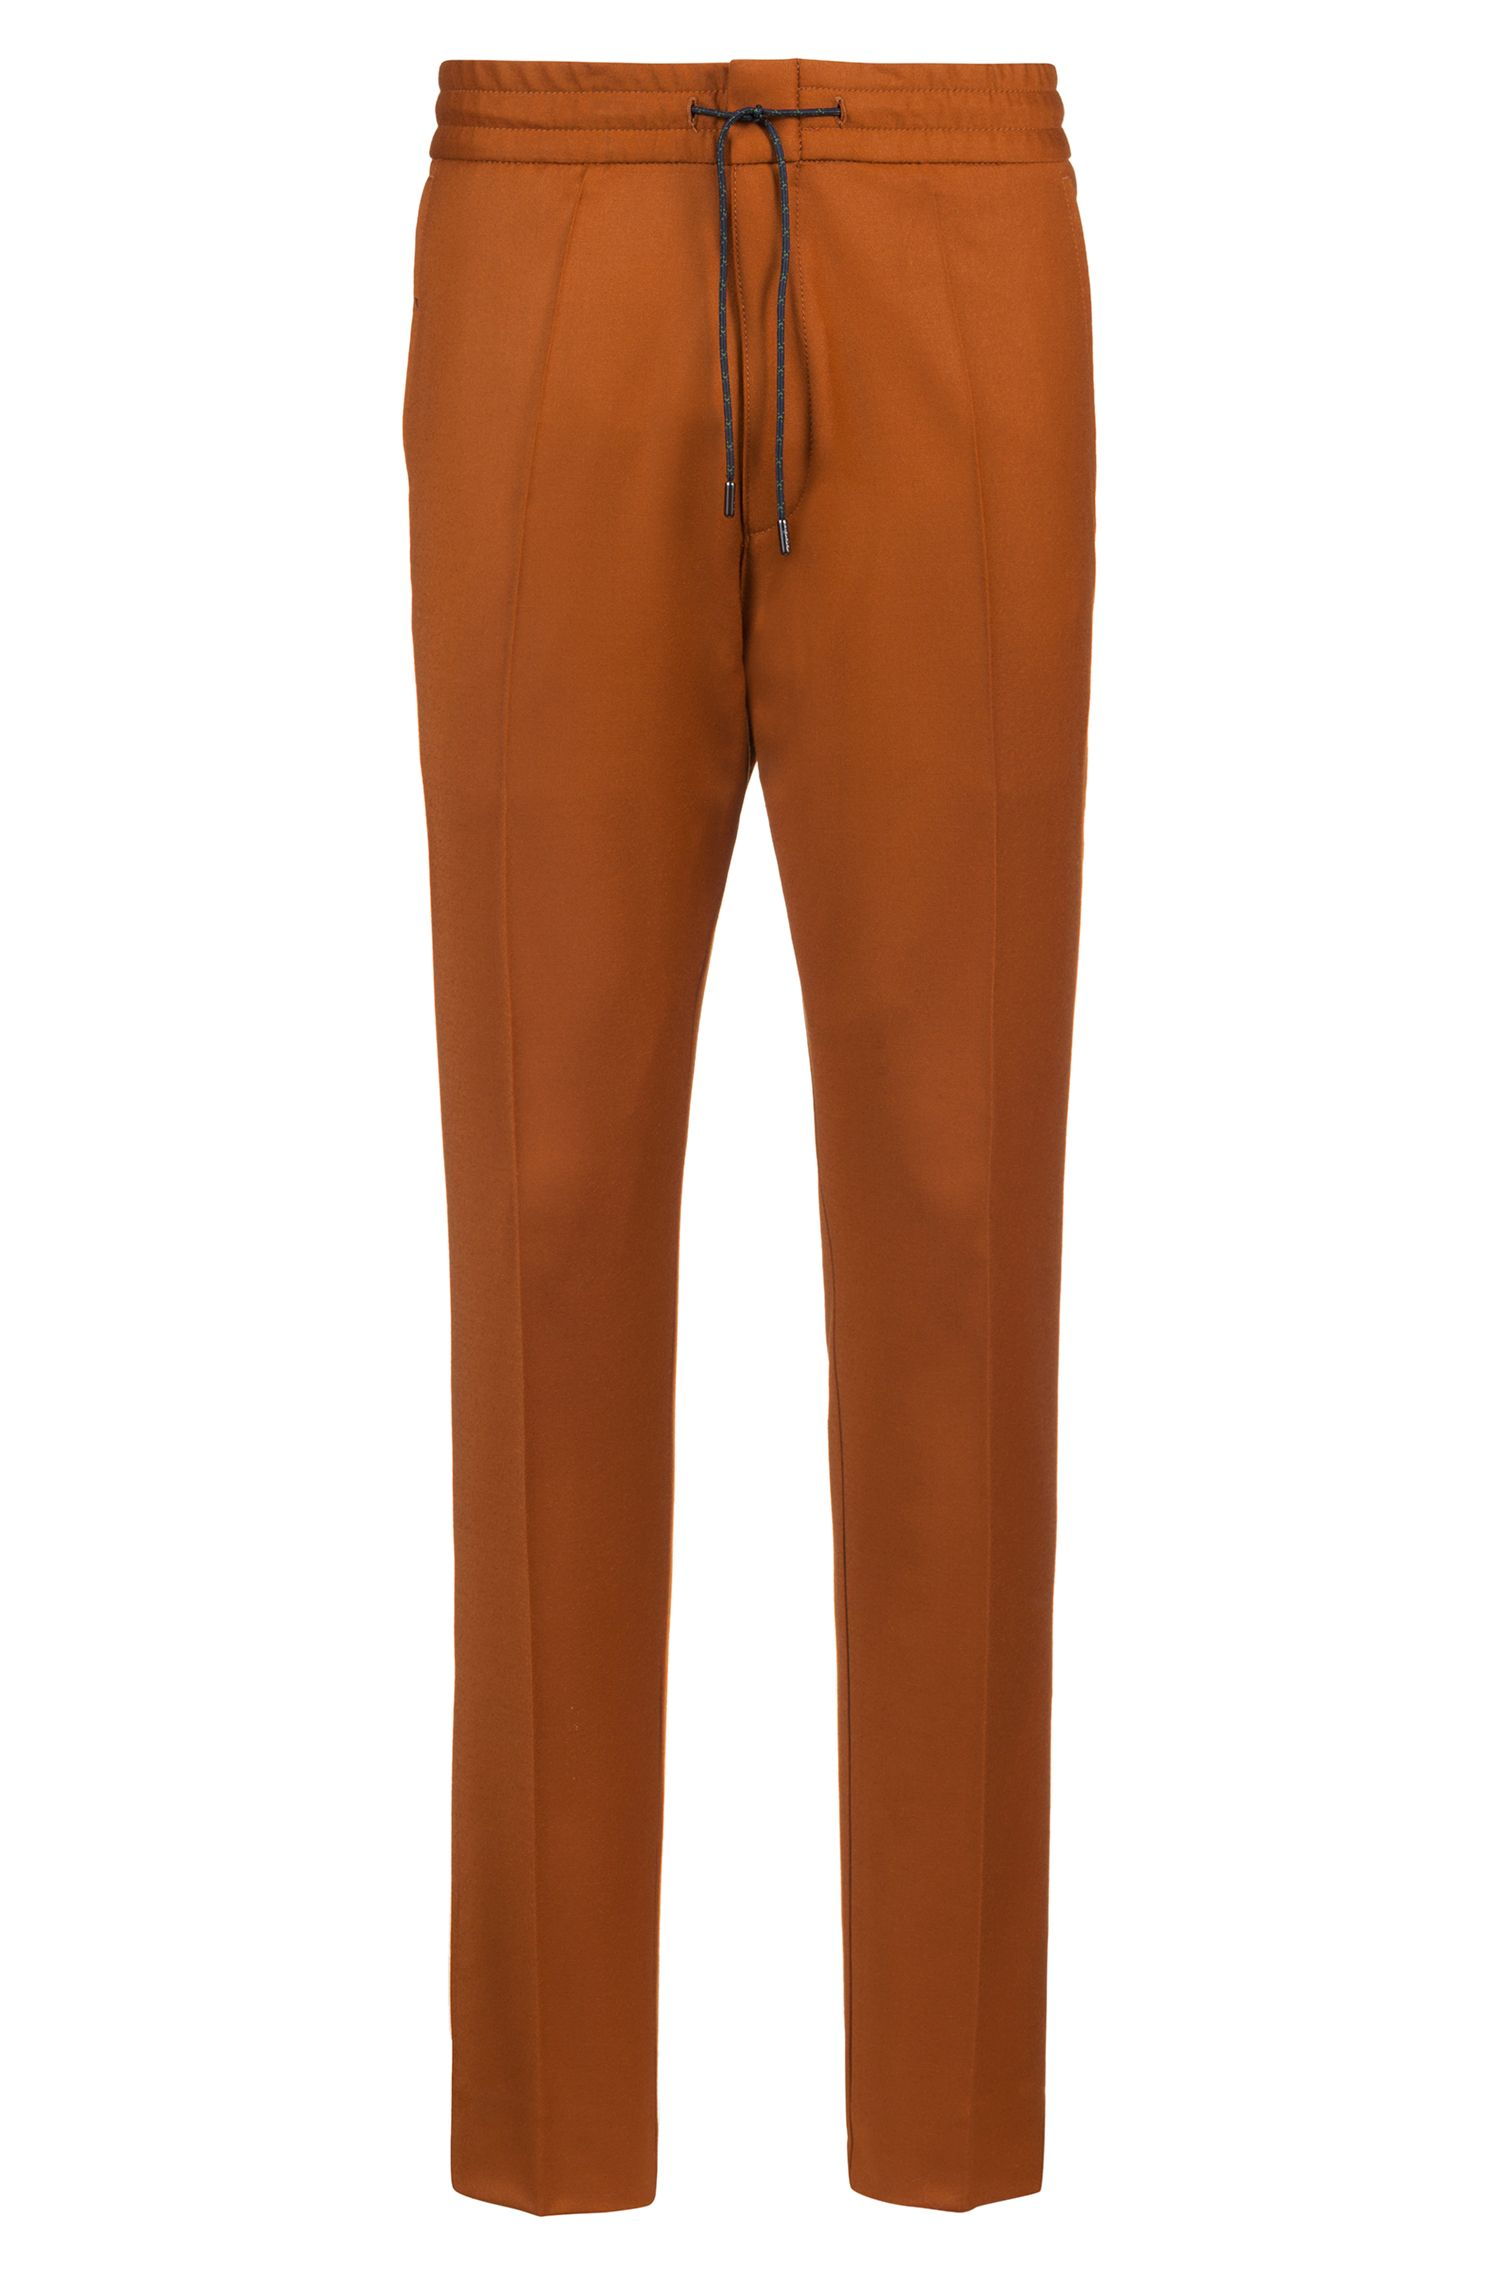 Pantaloni tapered fit in lana vergine elasticizzata con vita elastica, Marrone